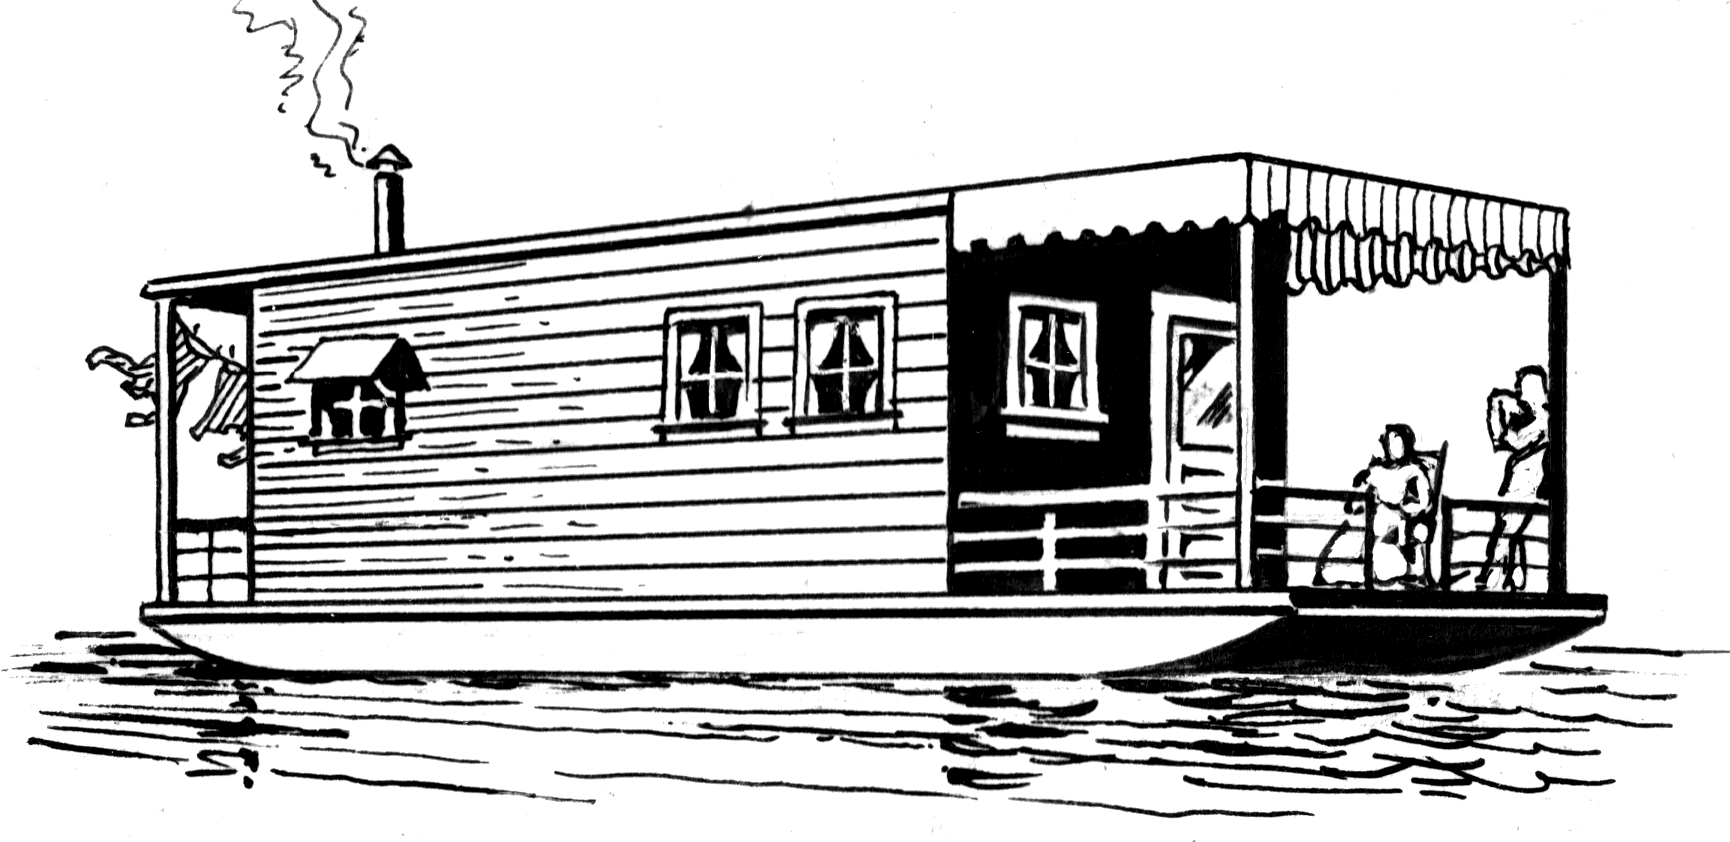 file houseboat 002 png the work of god s children free clipart white house clipart images black and white house